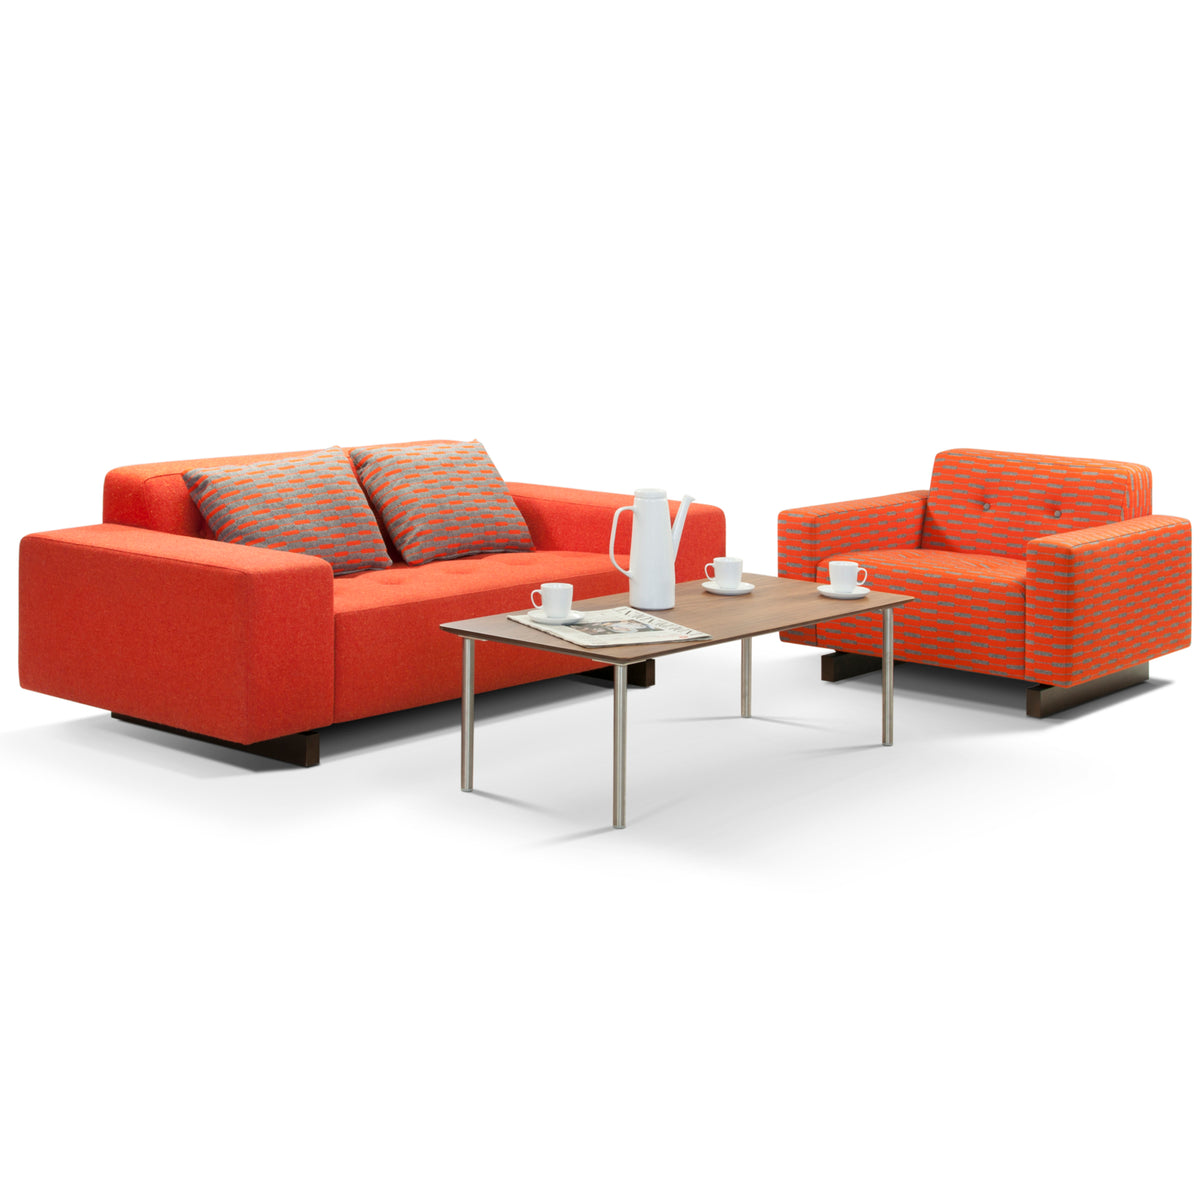 Hitch Mylius Office HM46 Abbey Two Seat Sofa Seating